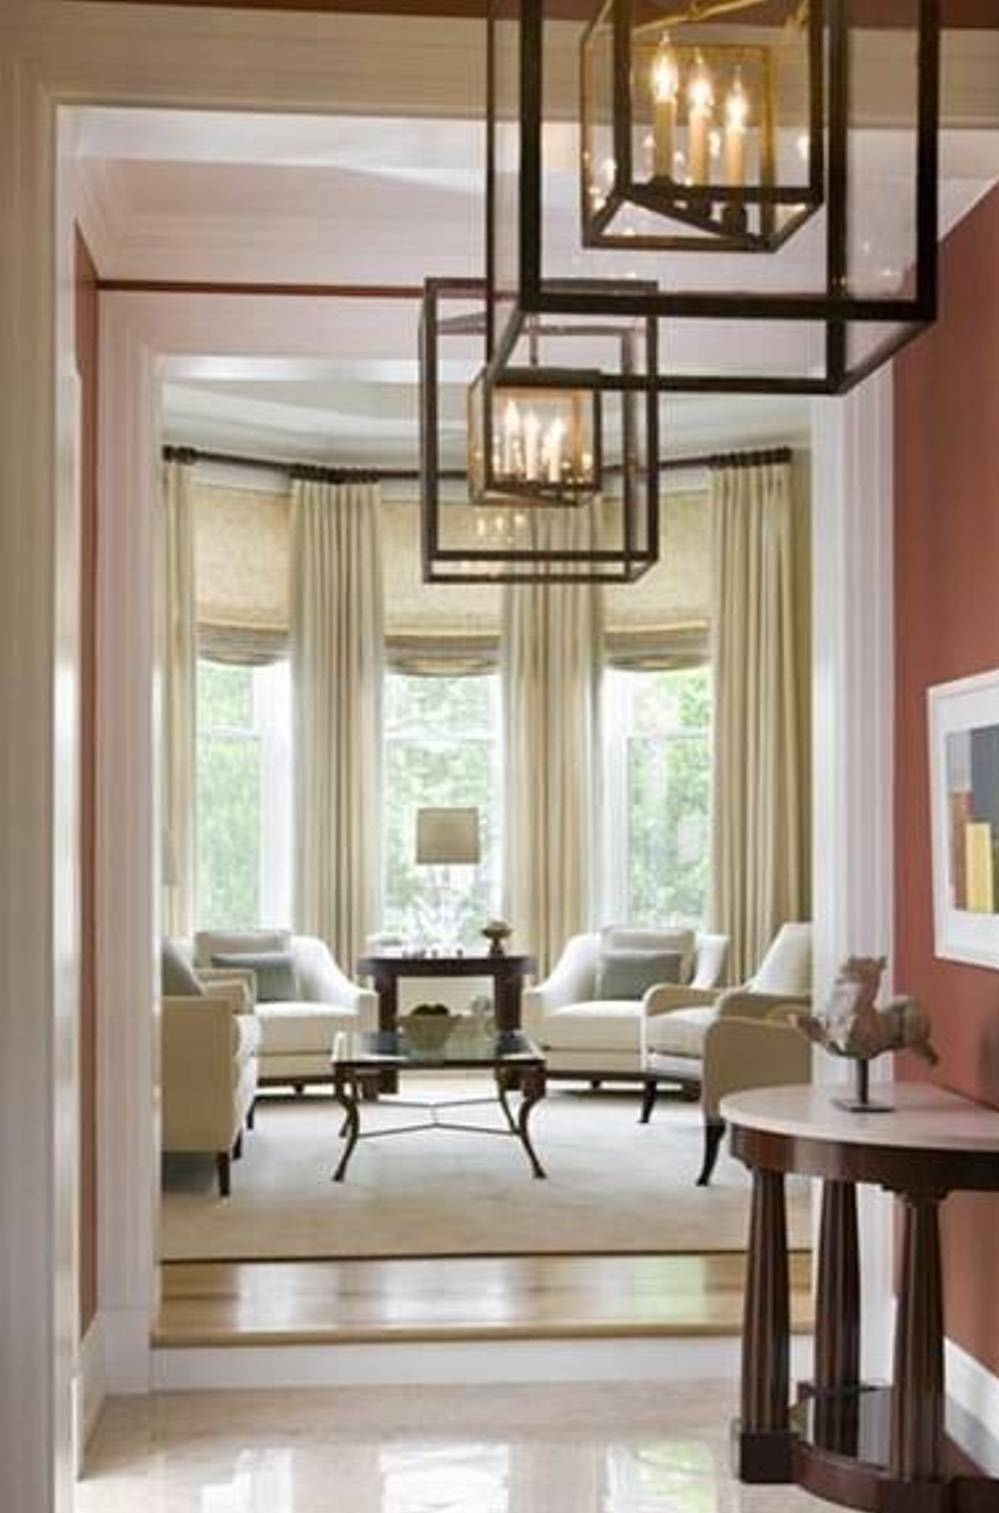 Foyer Pendant Light Fixture | Light Fixtures Design Ideas Regarding Foyer Pendant Light Fixtures (View 5 of 15)